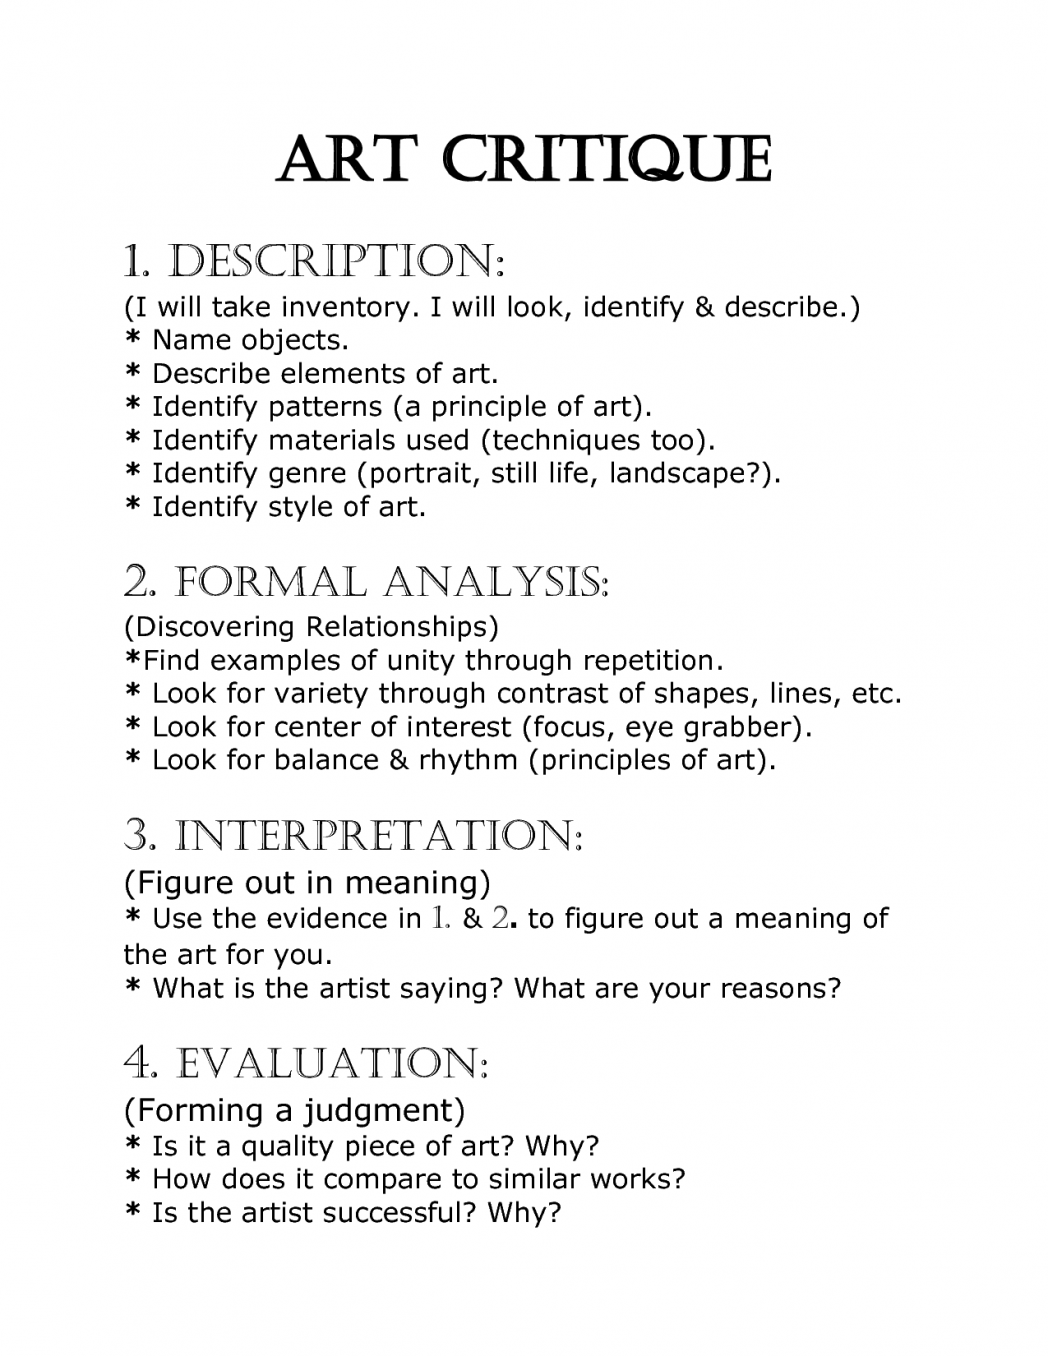 006 Art Essayss Critique Essay Question Ana Scholarship Edexcel Extended Introduction Free Conclusion College 1048x1356 Phenomenal History Pop Outline Full